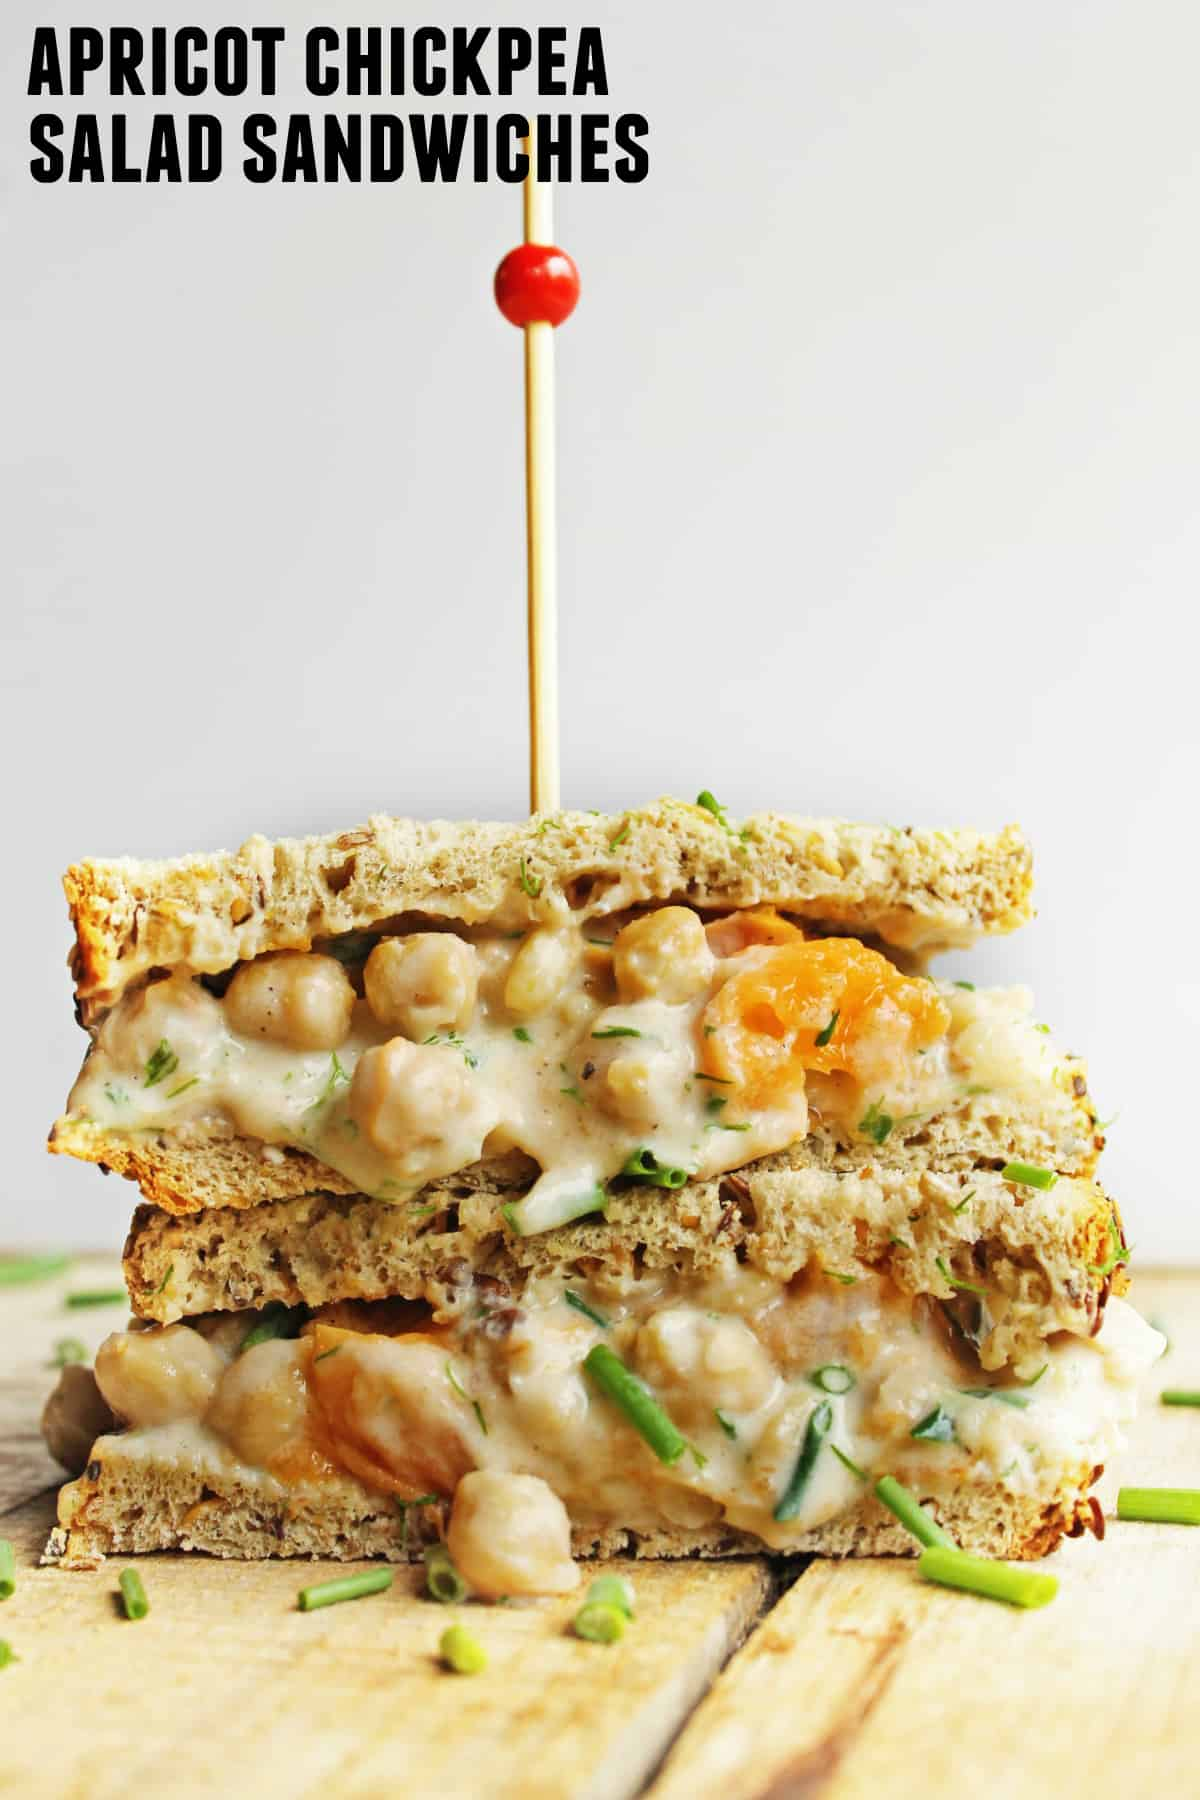 Apricot chickpea salad sandwiches! A fruity, vegetarian spin on the classic chicken salad sandwich recipe. DELICIOUS!